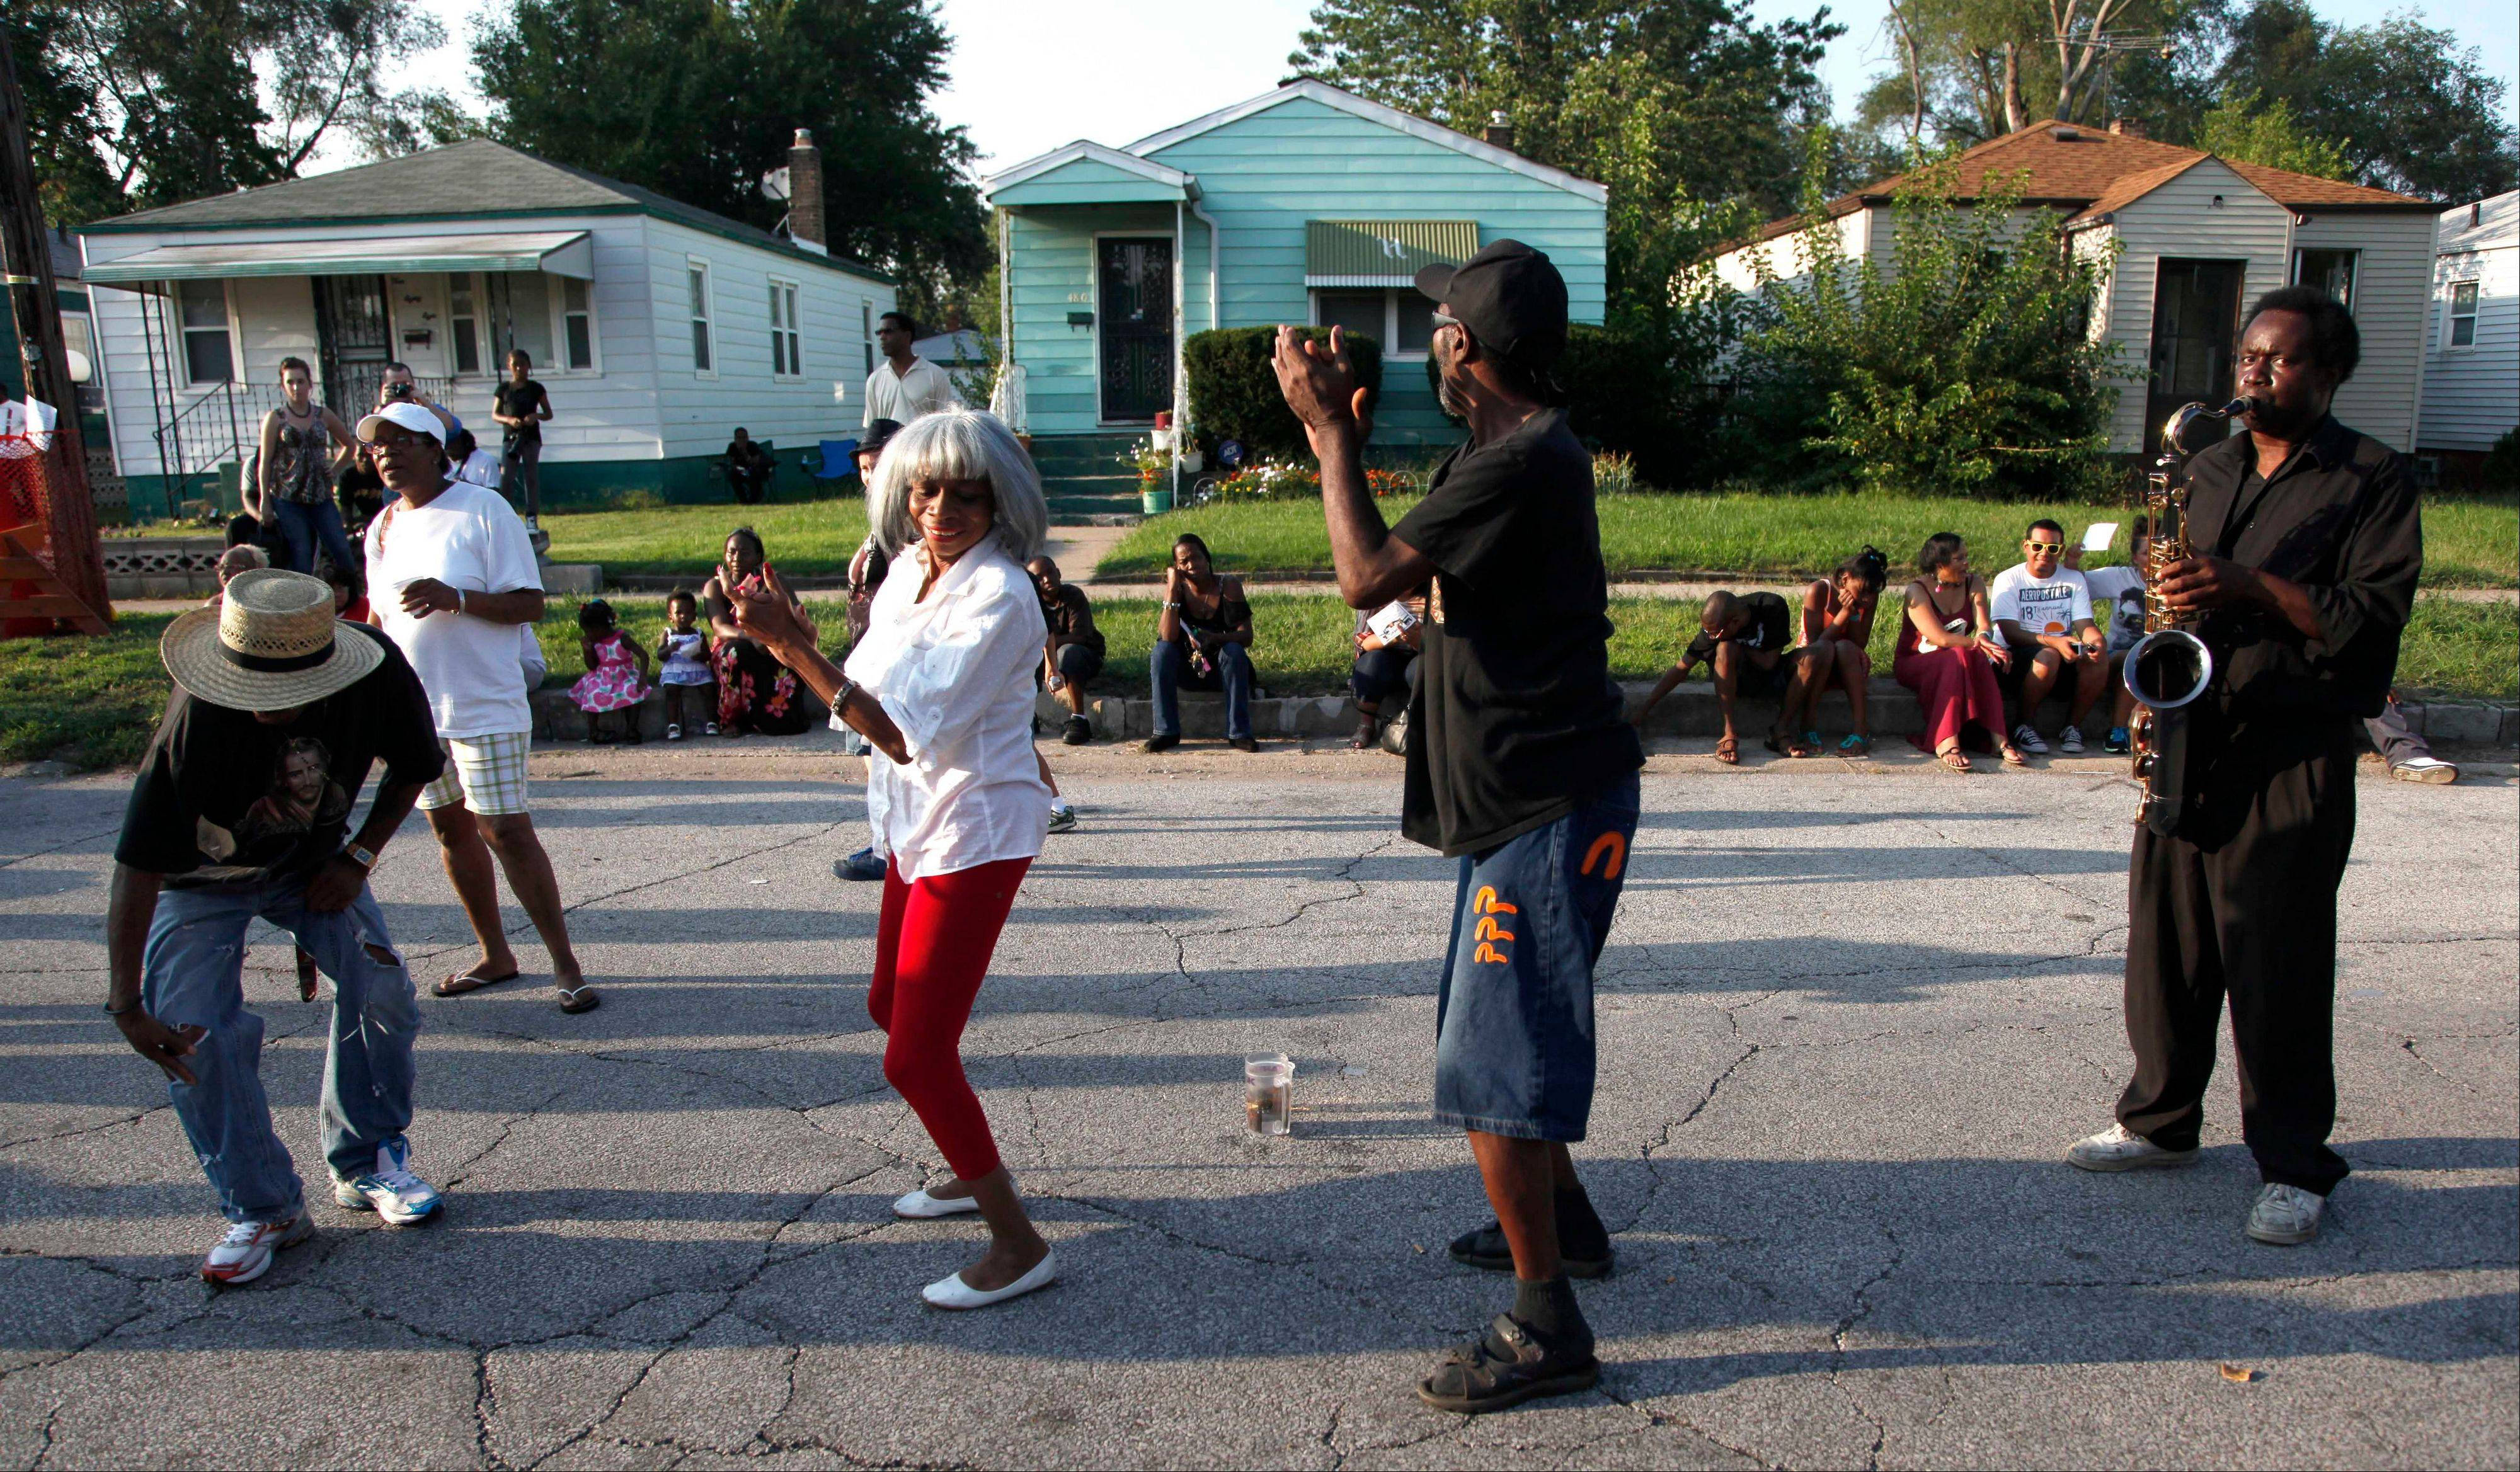 Gary Ind., residents dance to recorded music outside Jackson's boyhood home during celebrations marking what would have been Jackson's 54th birthday Wednesday.